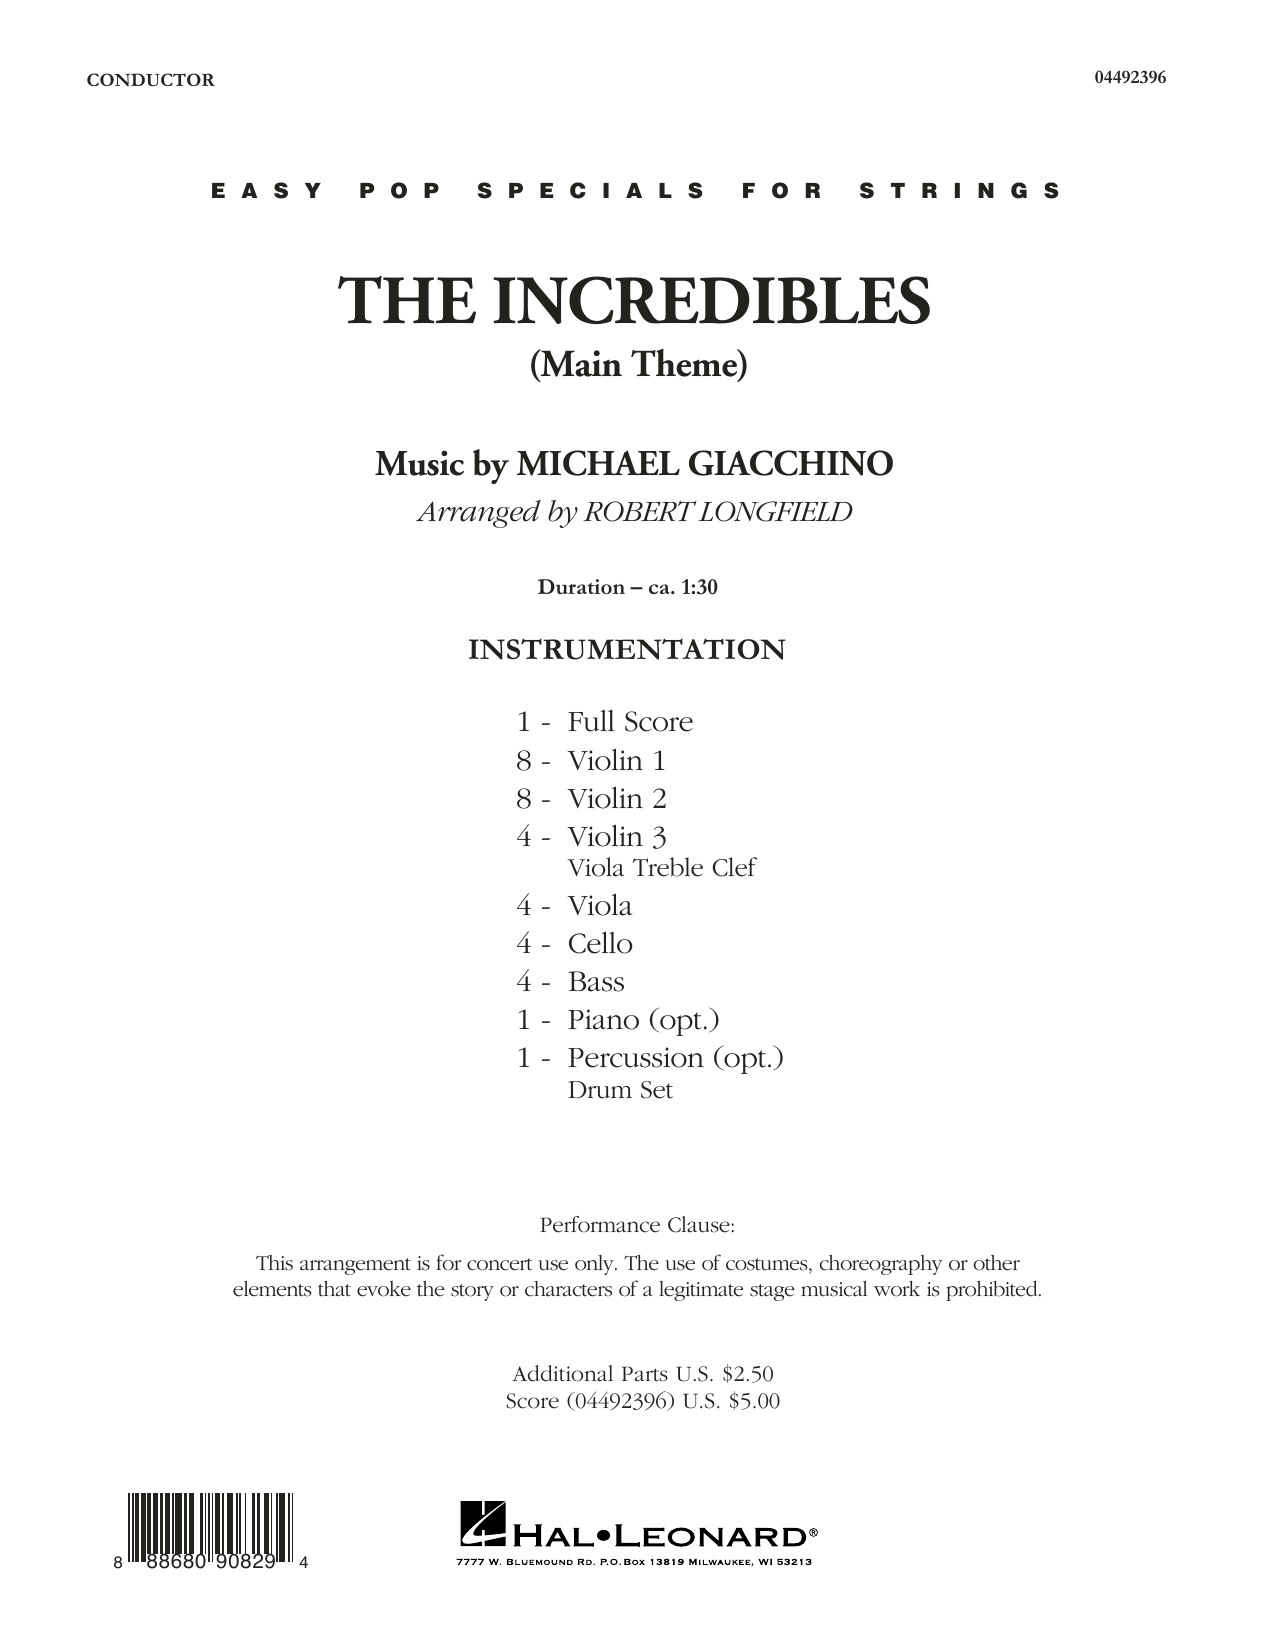 The Incredibles (Main Theme) (arr. Robert Longfield) - Conductor Score (Full Score) (Orchestra)